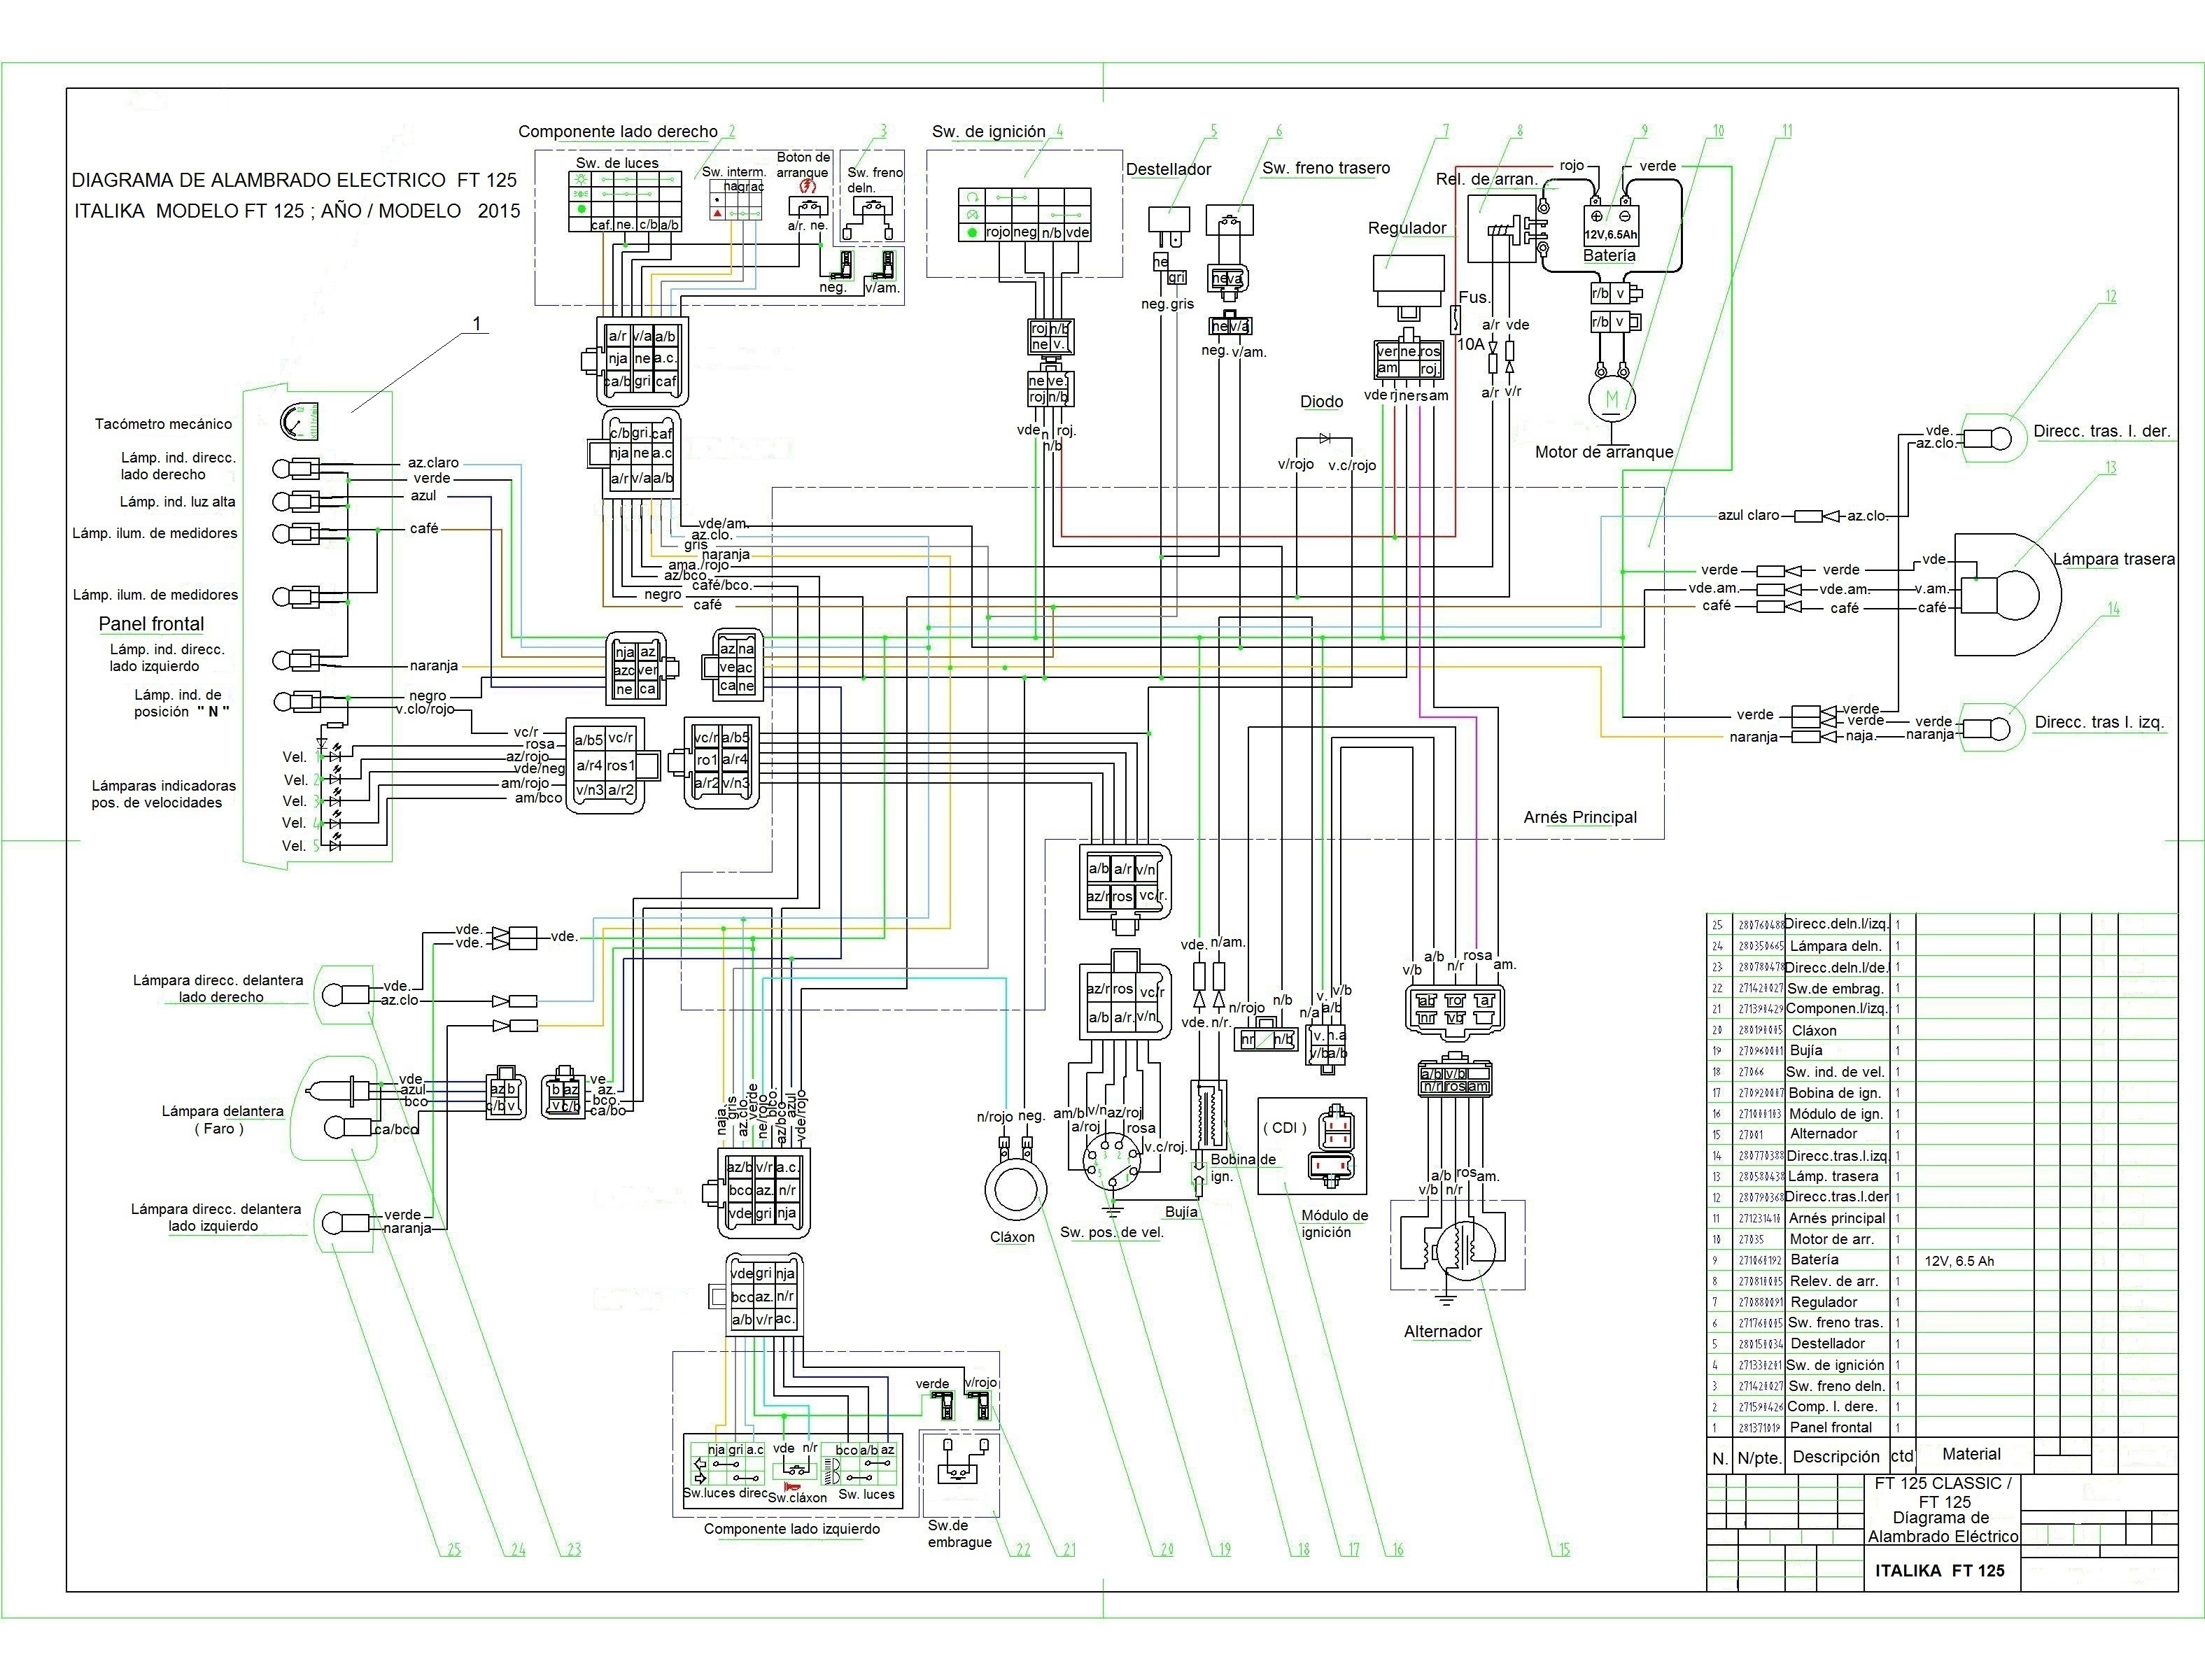 diagrama electrico de la italika ft125